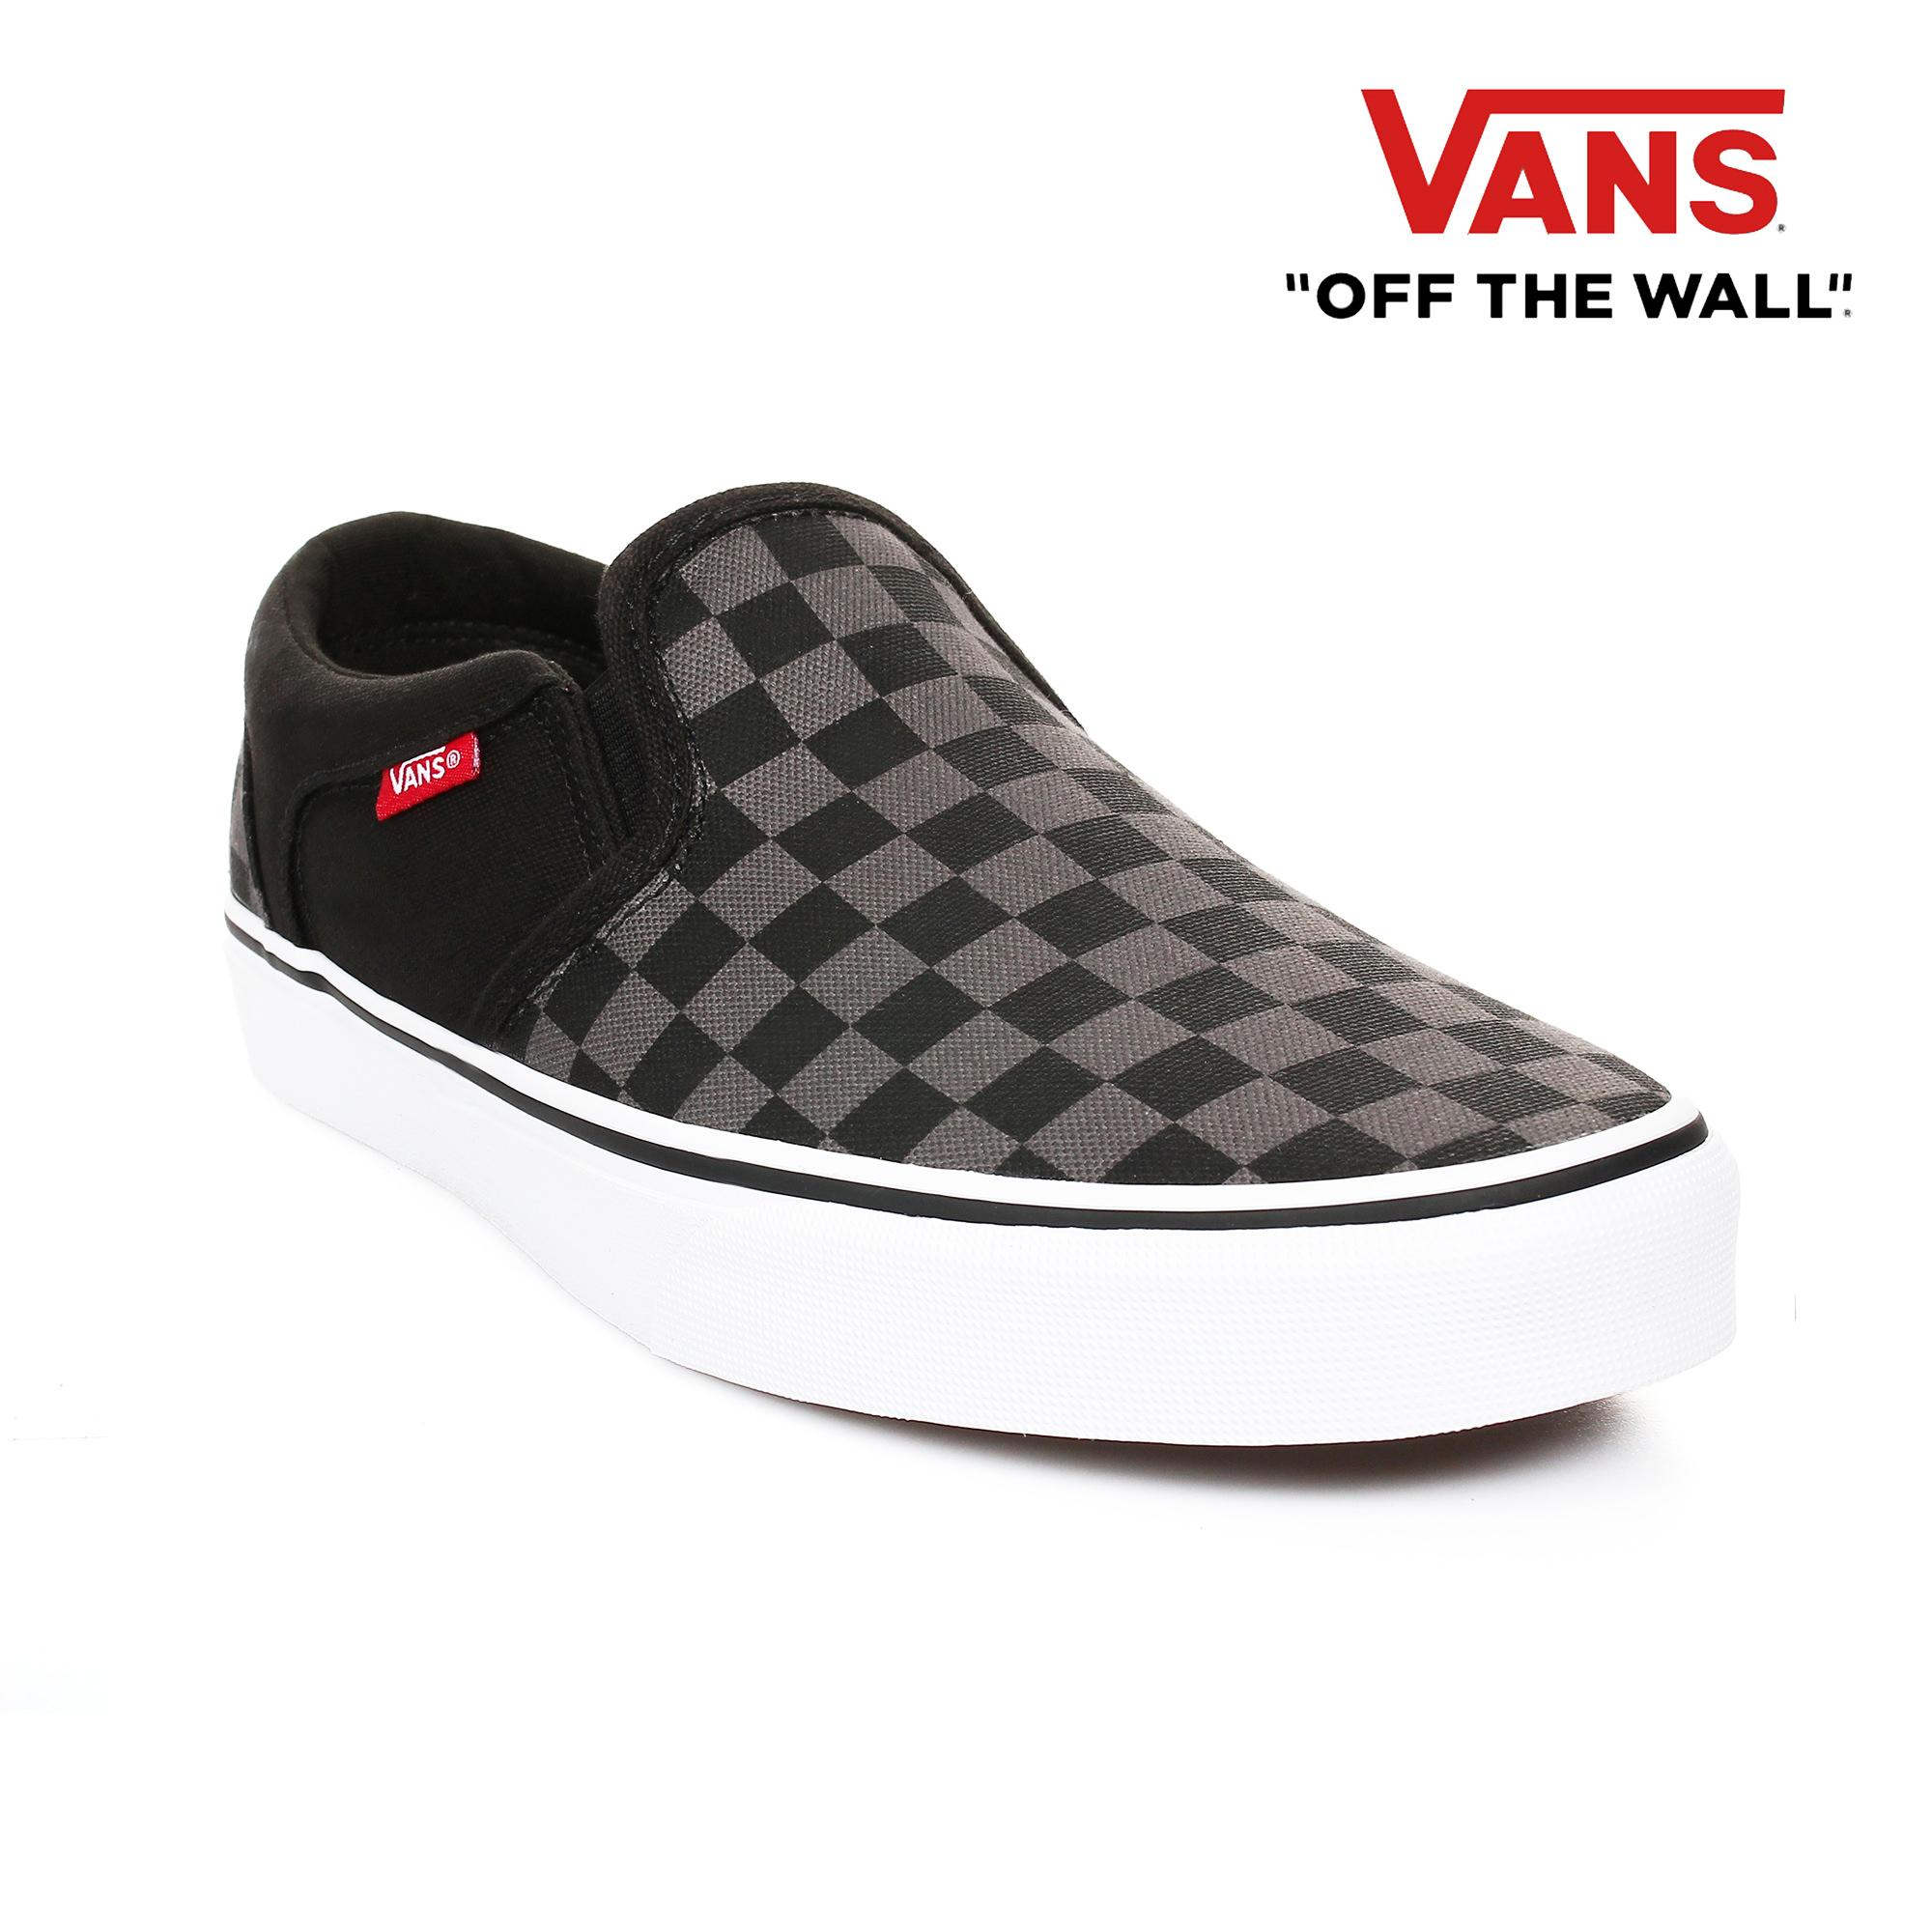 49d542ae12 Vans Shoes for Men Philippines - Vans Men s Shoes for sale - prices ...